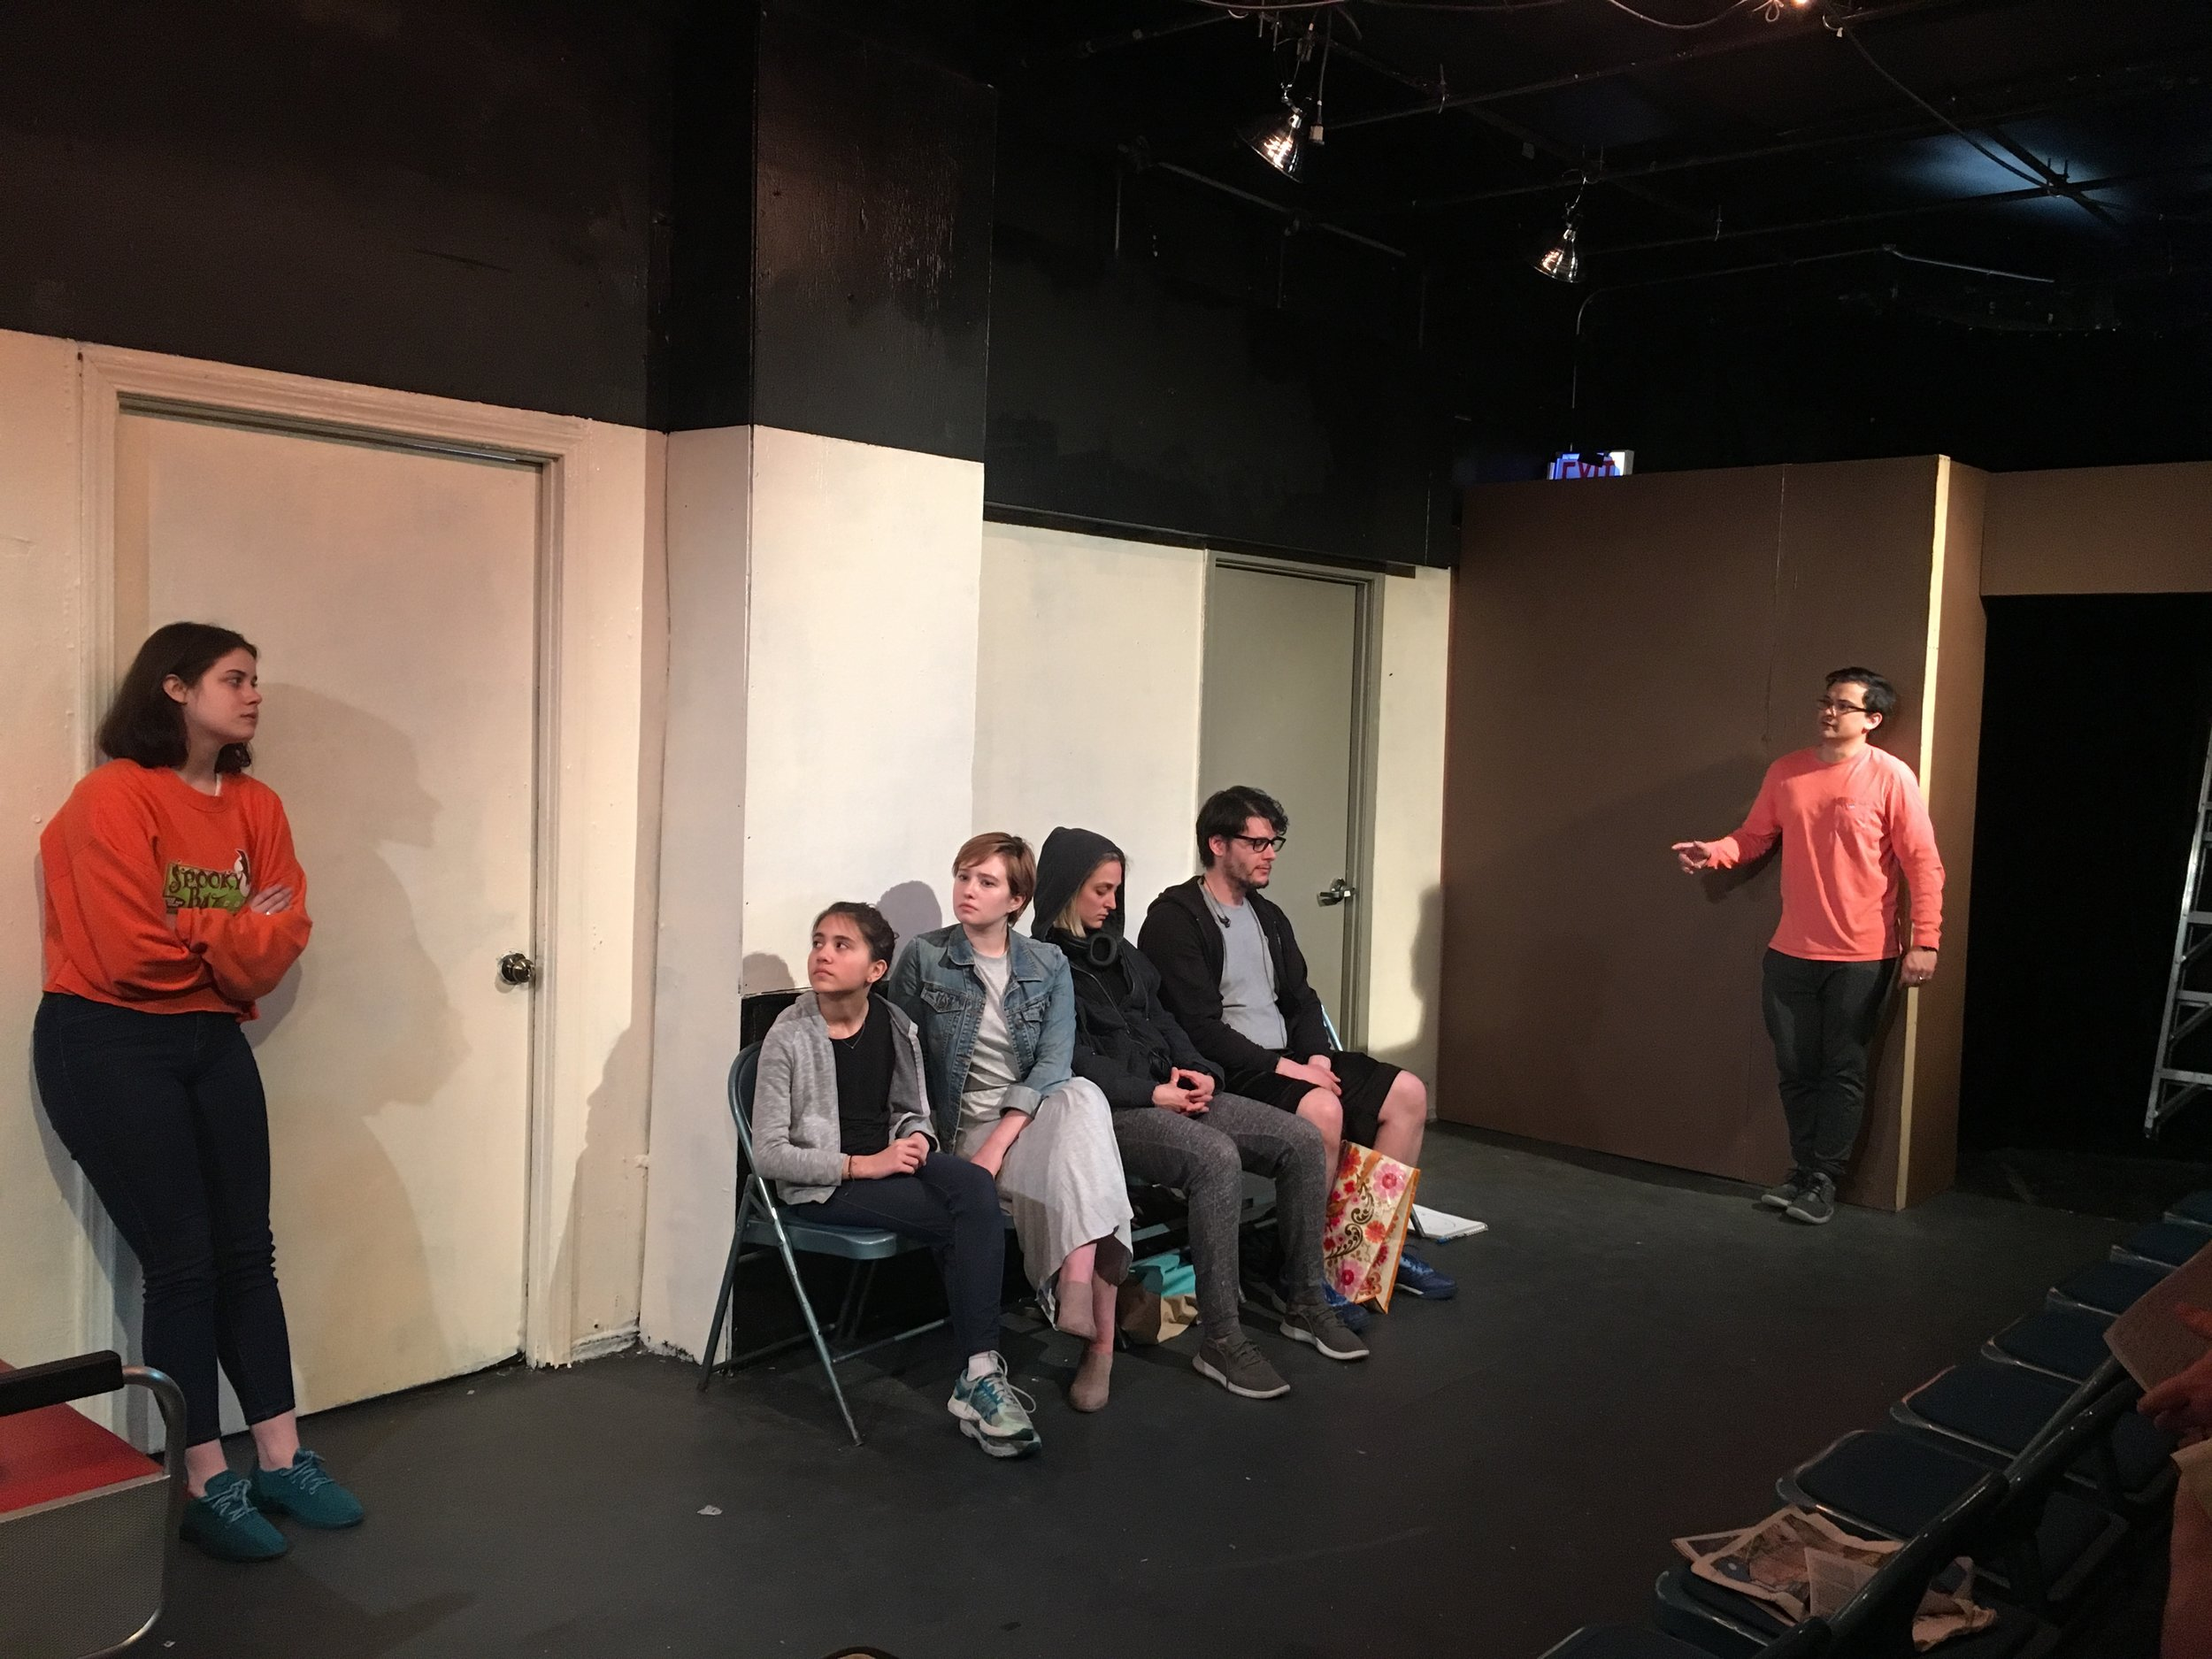 The cast of AMICABLE rehearses. (from left to right: Gracie Brazeal, Izzy Schafer, Abby Walburn, Melanie McNulty, Ian Gonzalez-Muetener, and David Hartley)